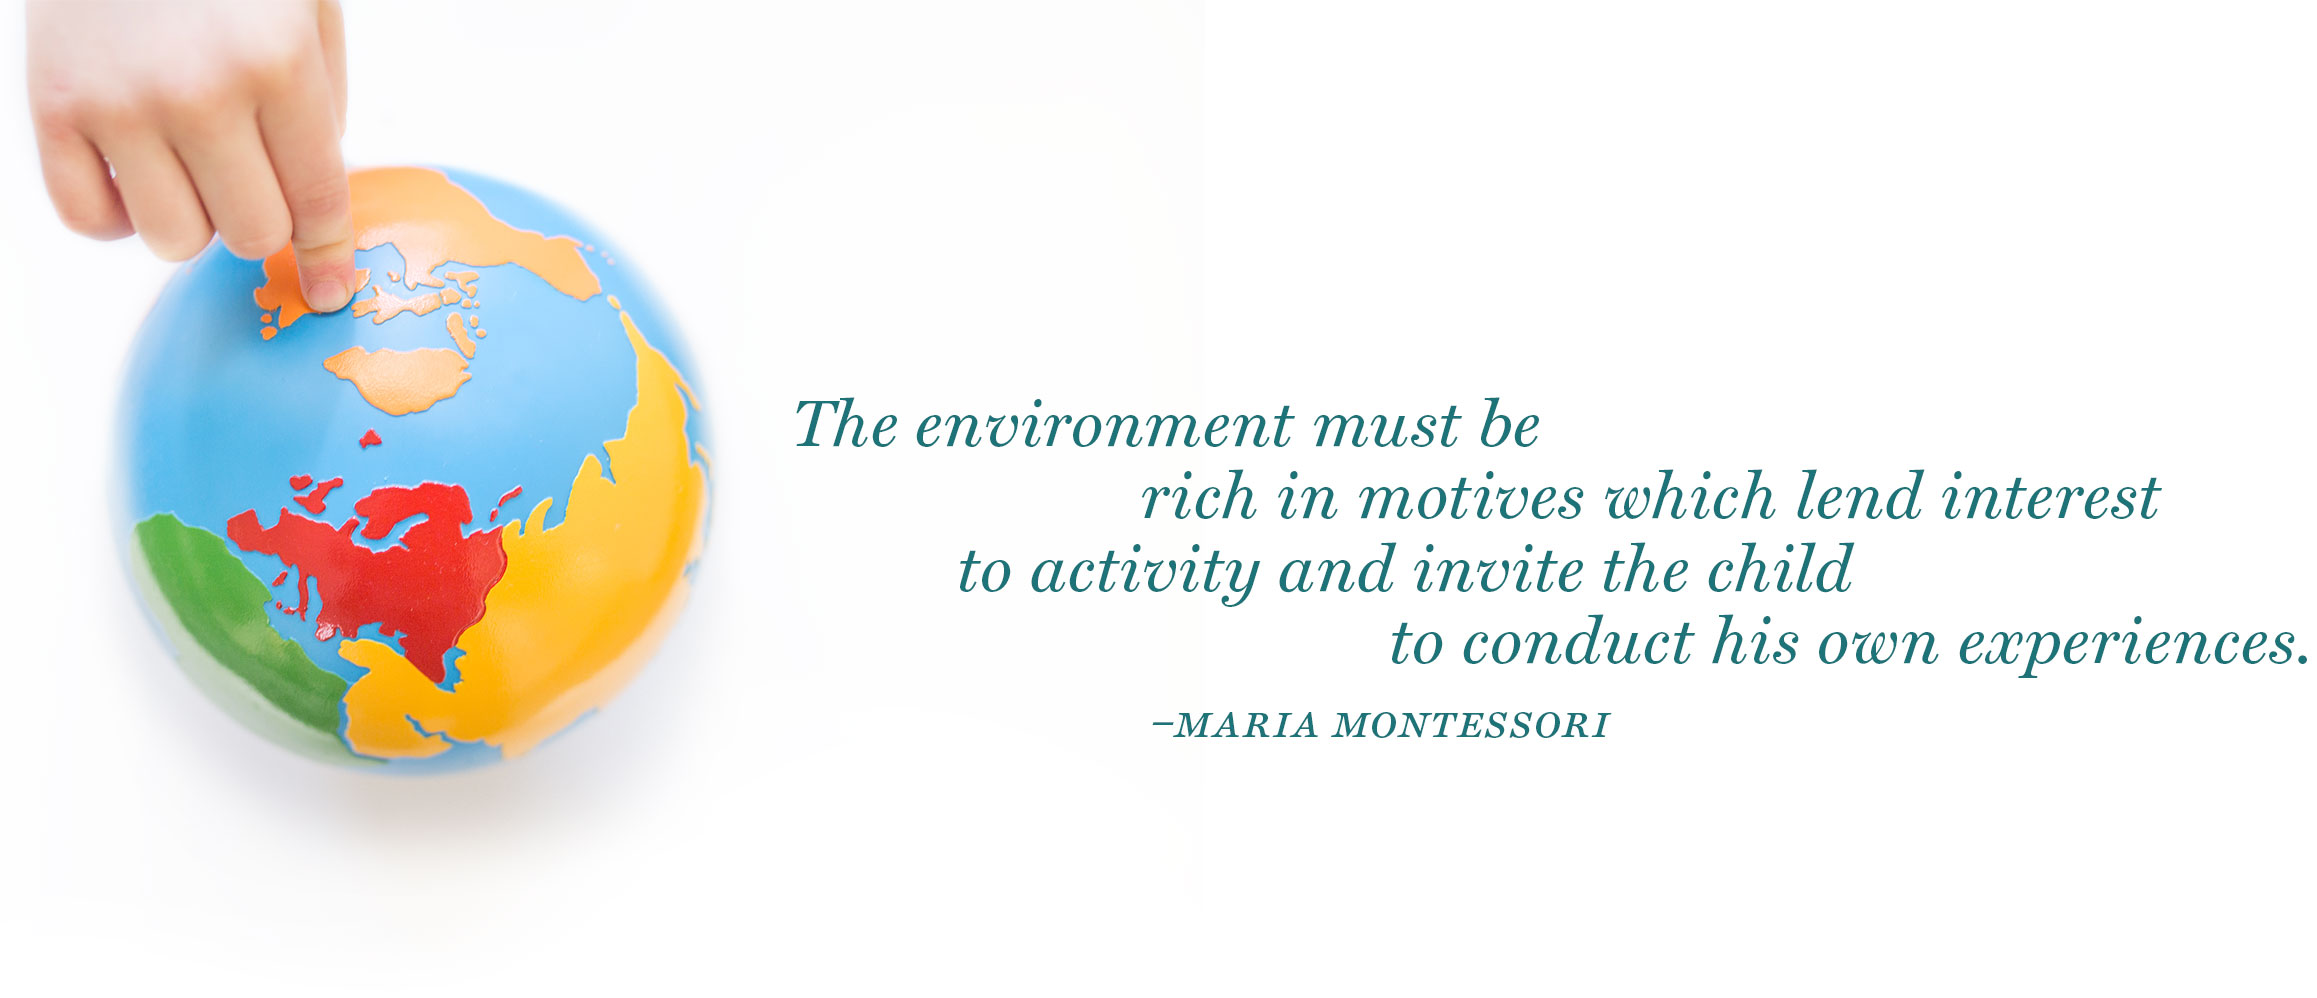 Maria Montessori Quote-The environment must be rich in motives which lend interest to activity and invite the child to conduct his own experiences.